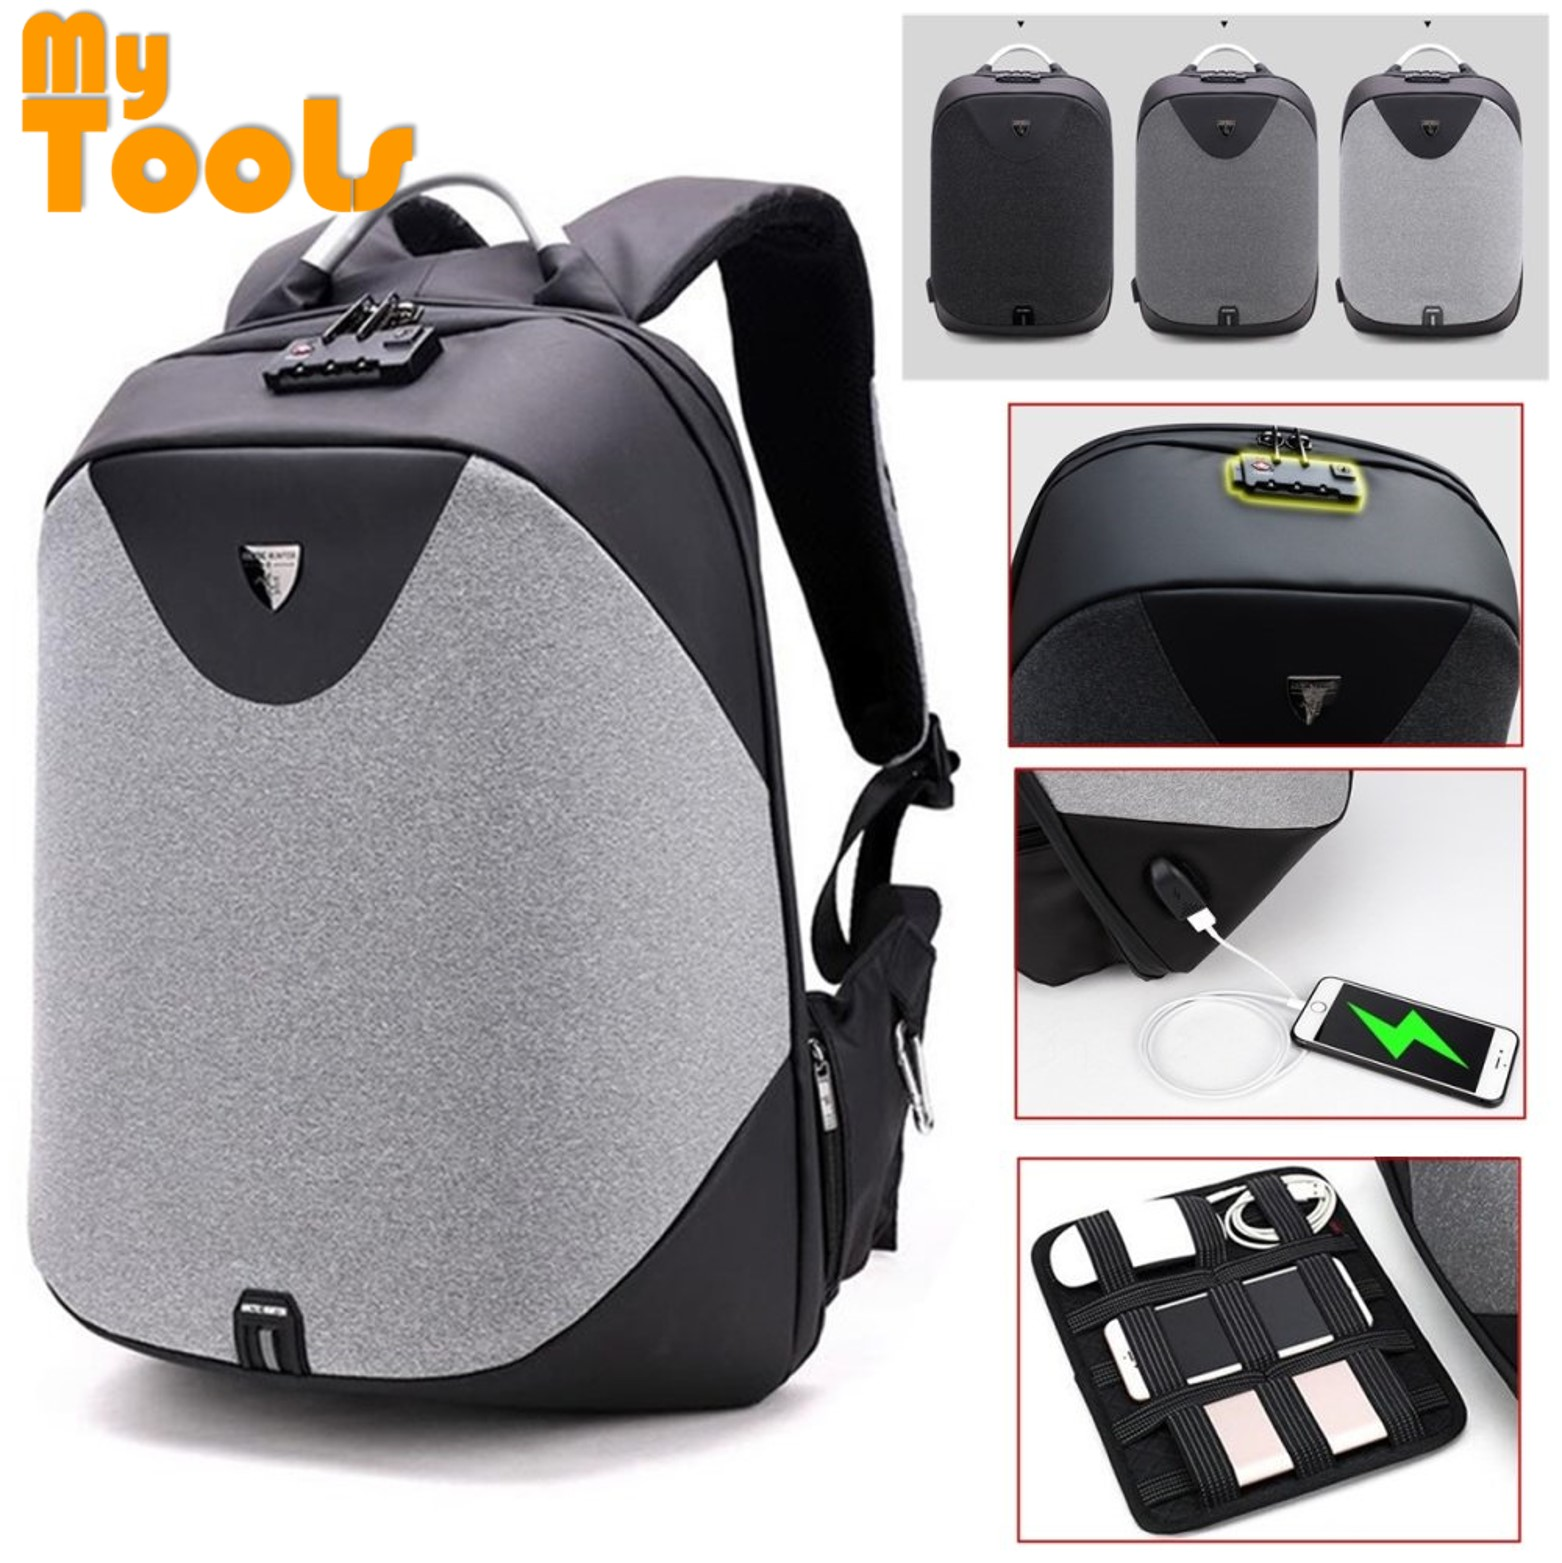 Mytools Anti Theft Backpack Hard Cover Usb Charging Laptop